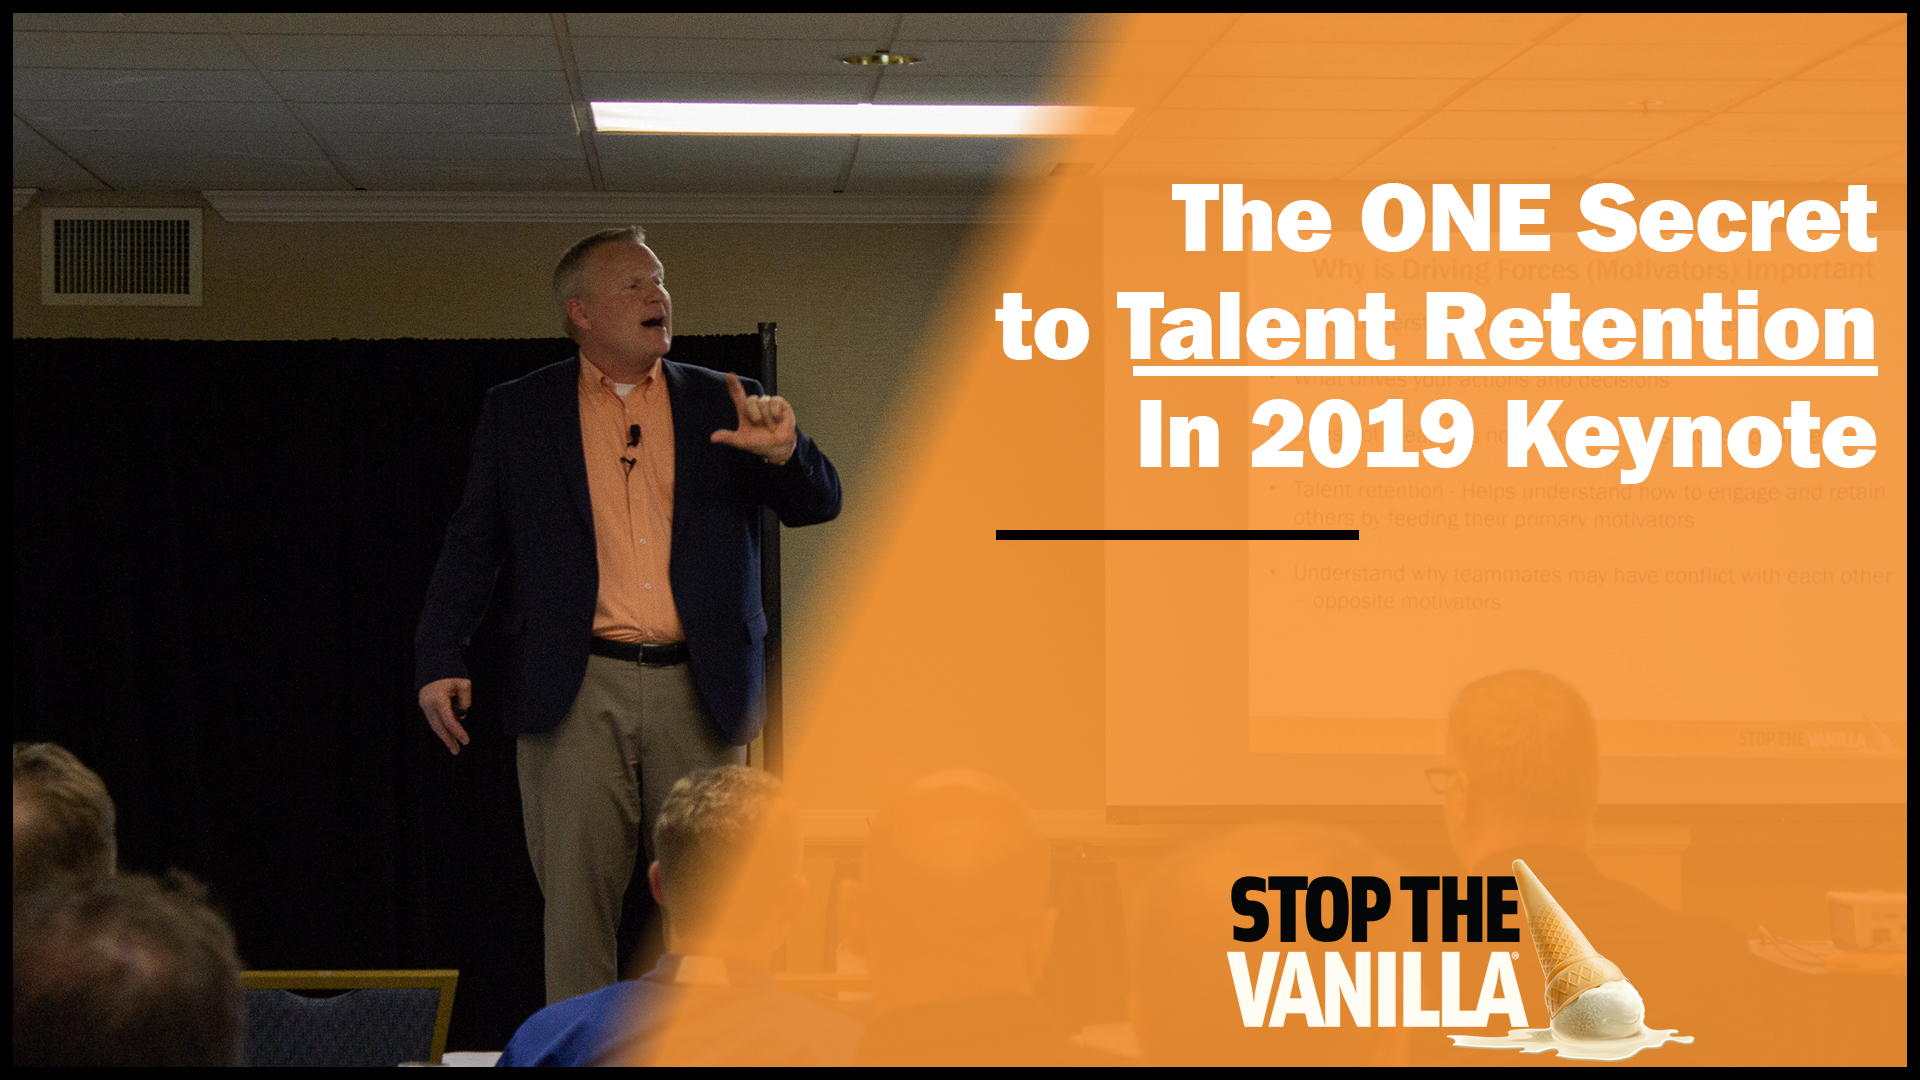 The One Secret to Talent Retention in 2019 Keynote